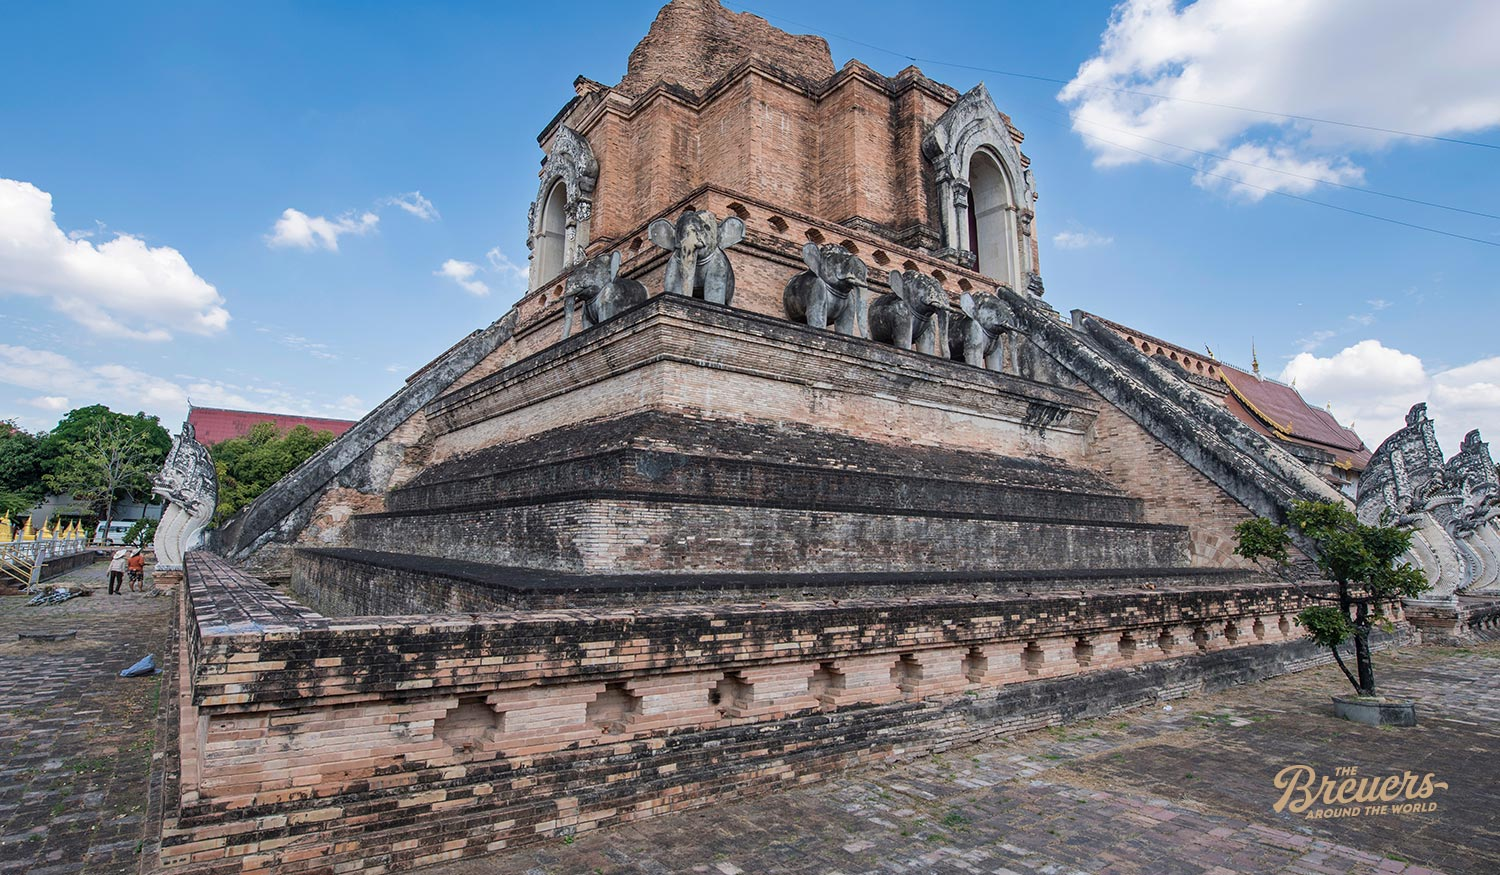 Wat Chedi Luang Tempel in Chaing Mai im Norden Thailands